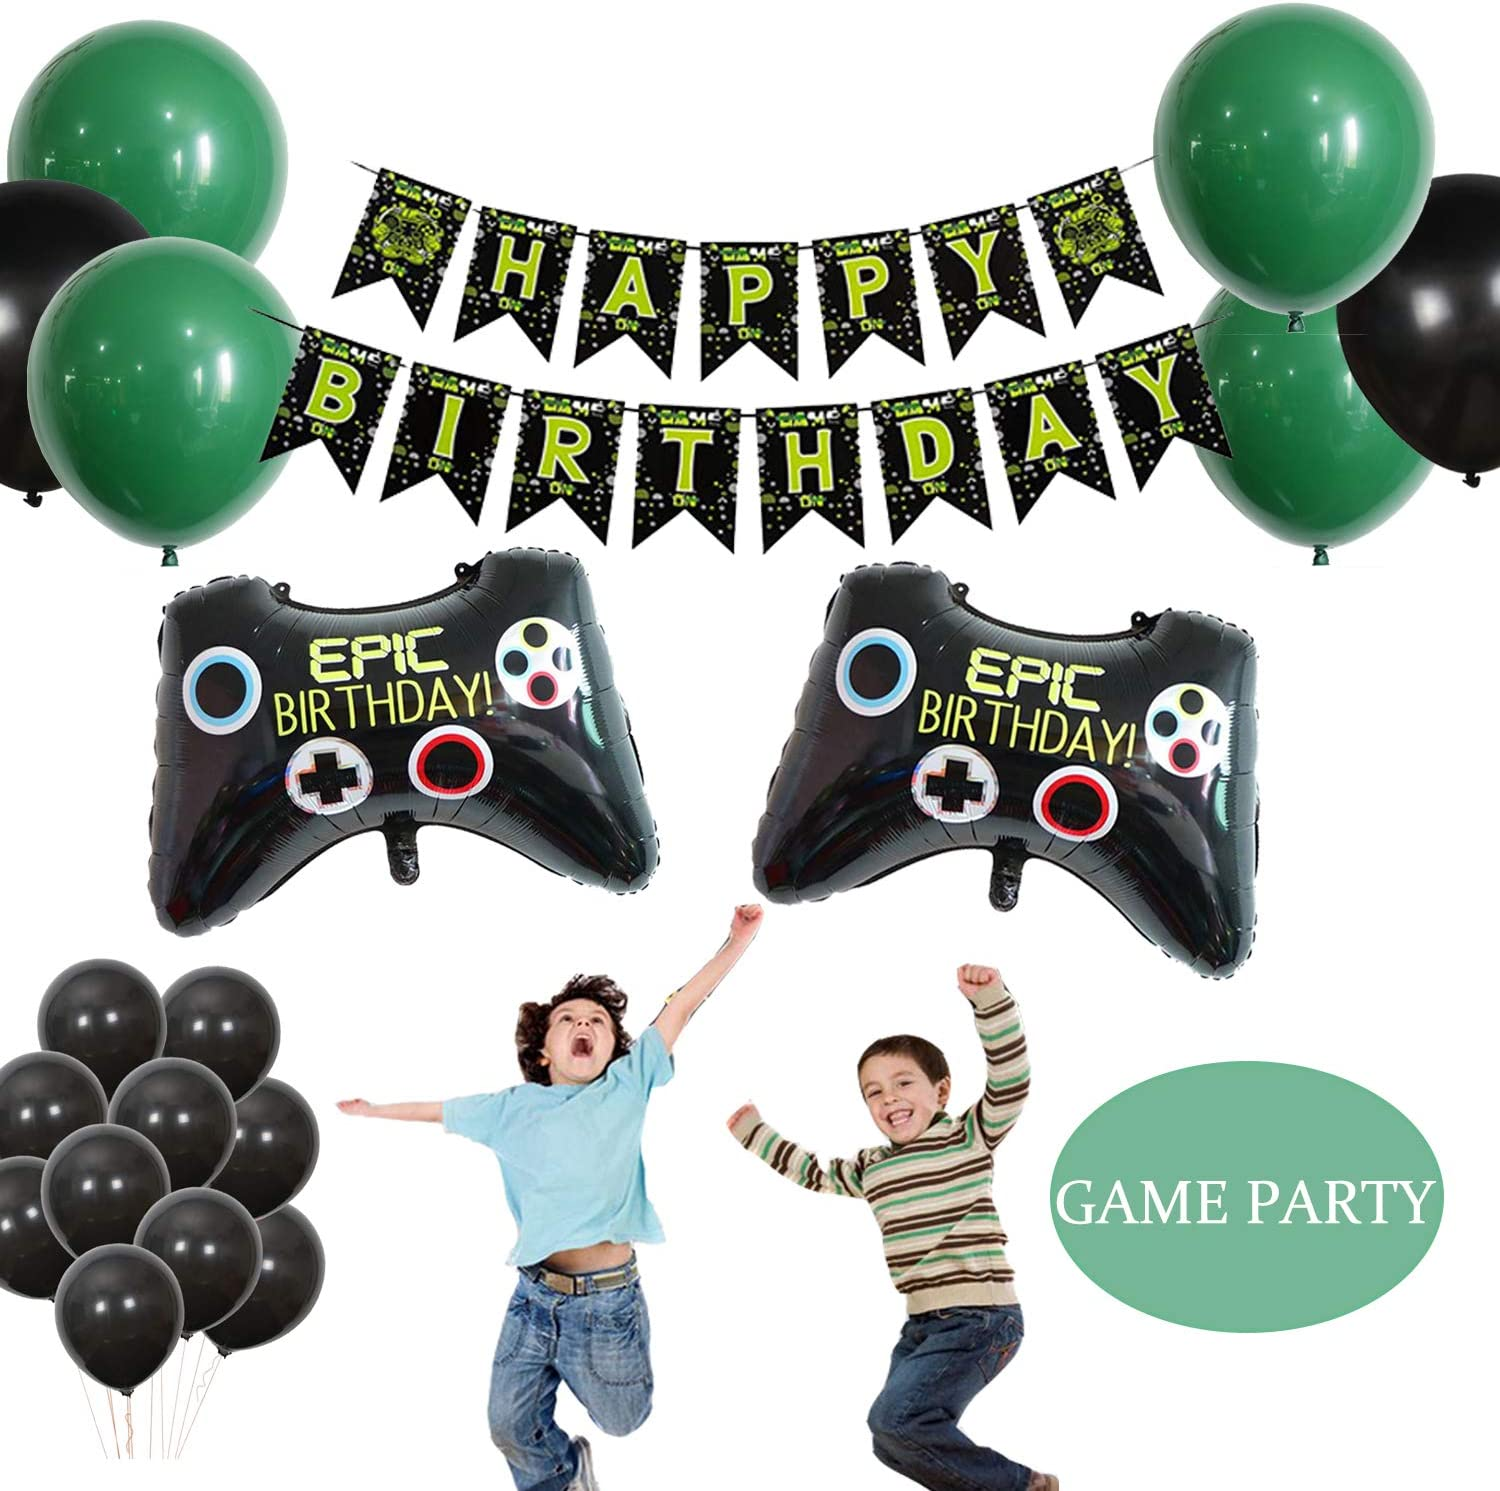 Video Game Party Supplies Birthday Party Descoration Include Video Game Controller Balloons Birthday Banners for Boys Video Game Theme Party